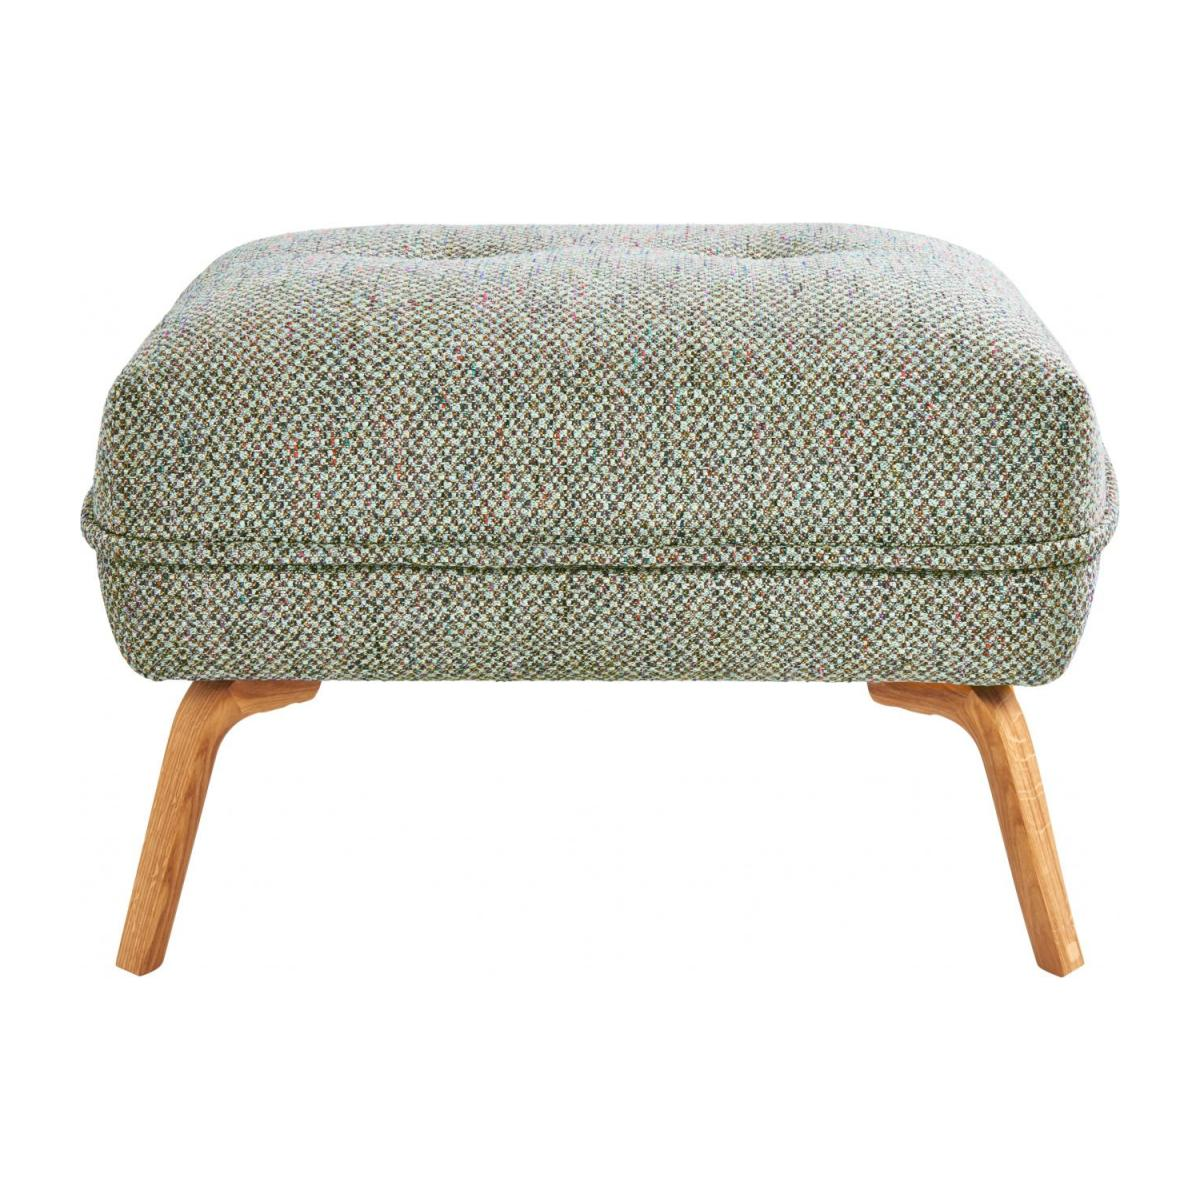 Footstool in Bellagio fabric, organic green and oak legs n°2